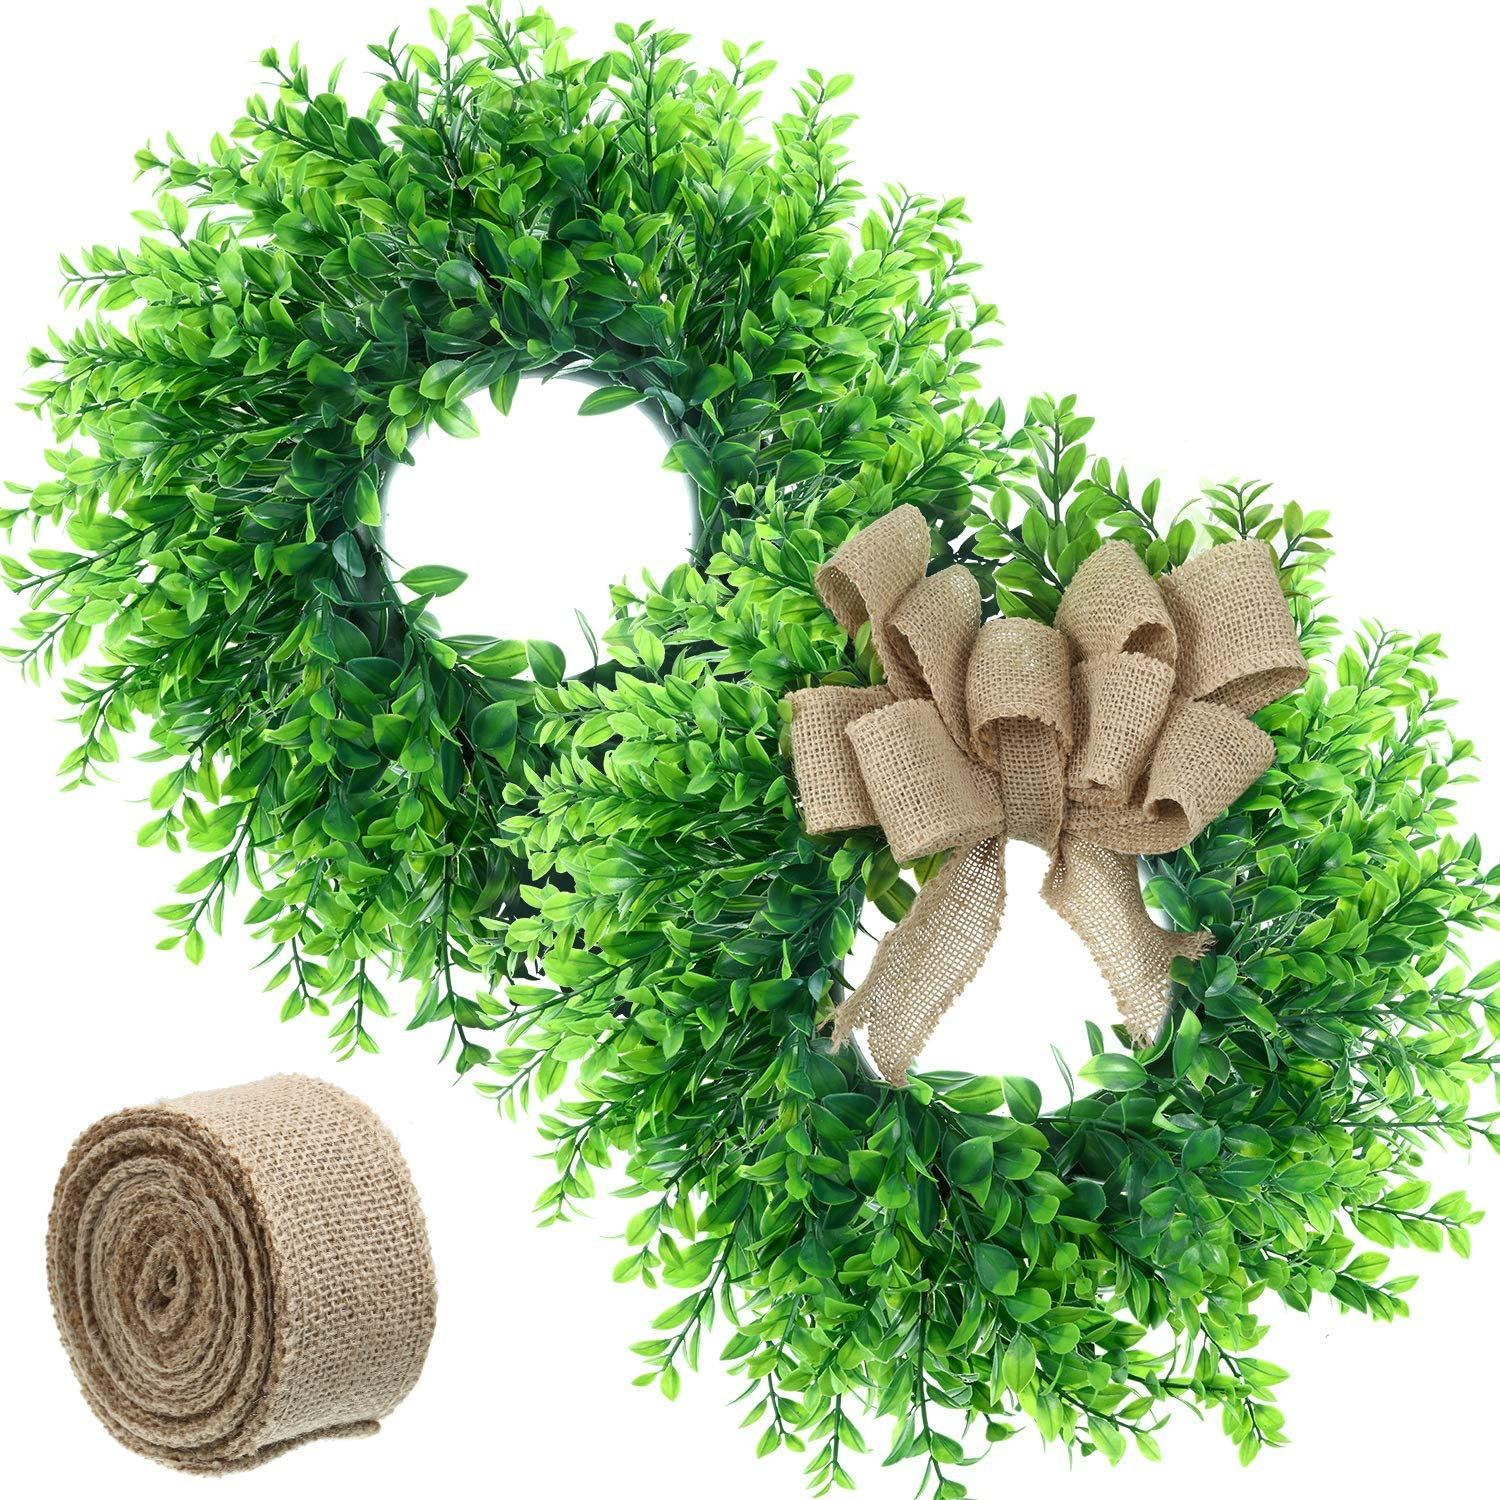 2 Pieces 14 Inch Artificial Boxwood Wreath Green Leaves Wreath Farmhouse Indoor Outdoor Wreath with 16 Feet Burlap Ribbon for Home Front Door Wall Window Wedding Party Festival Celebration Decoration